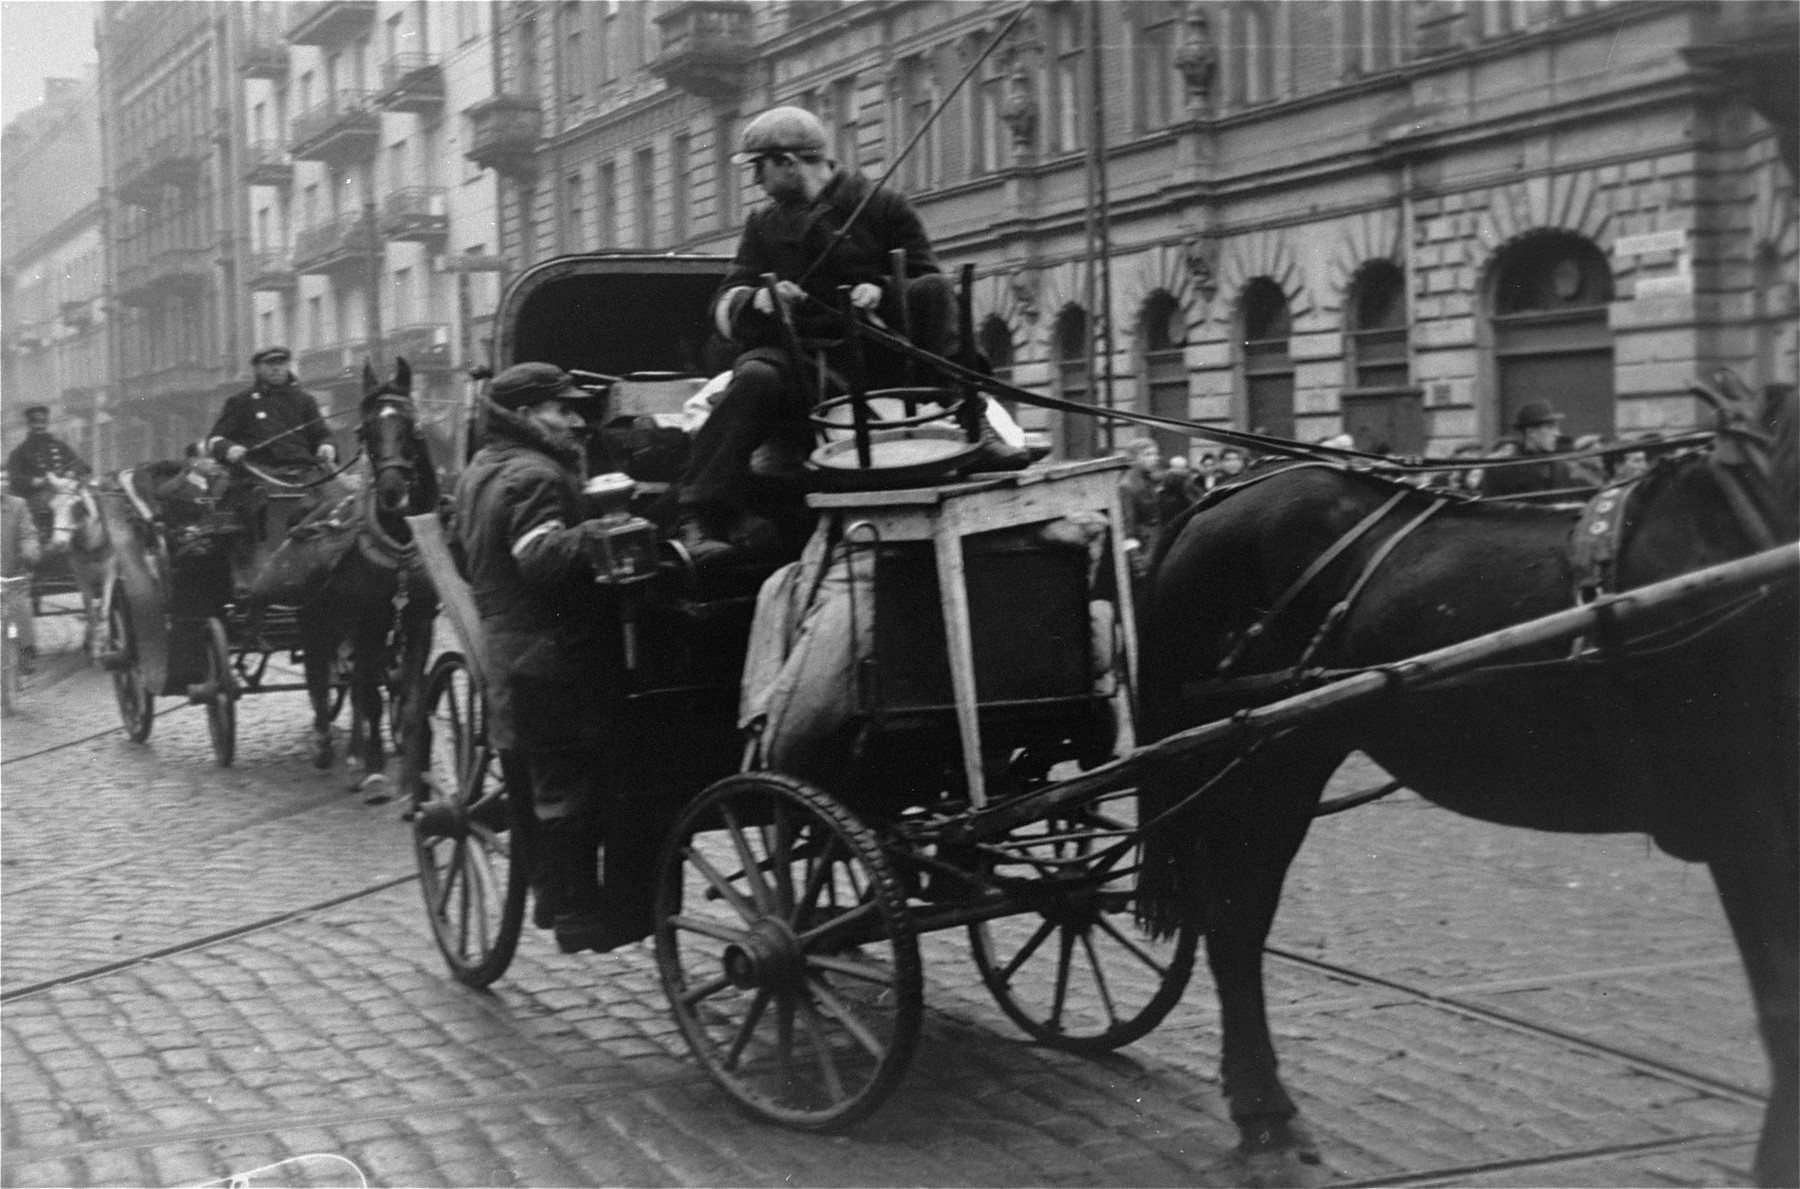 A driver leads a horse-drawn carriage along a street in the Warsaw ghetto.